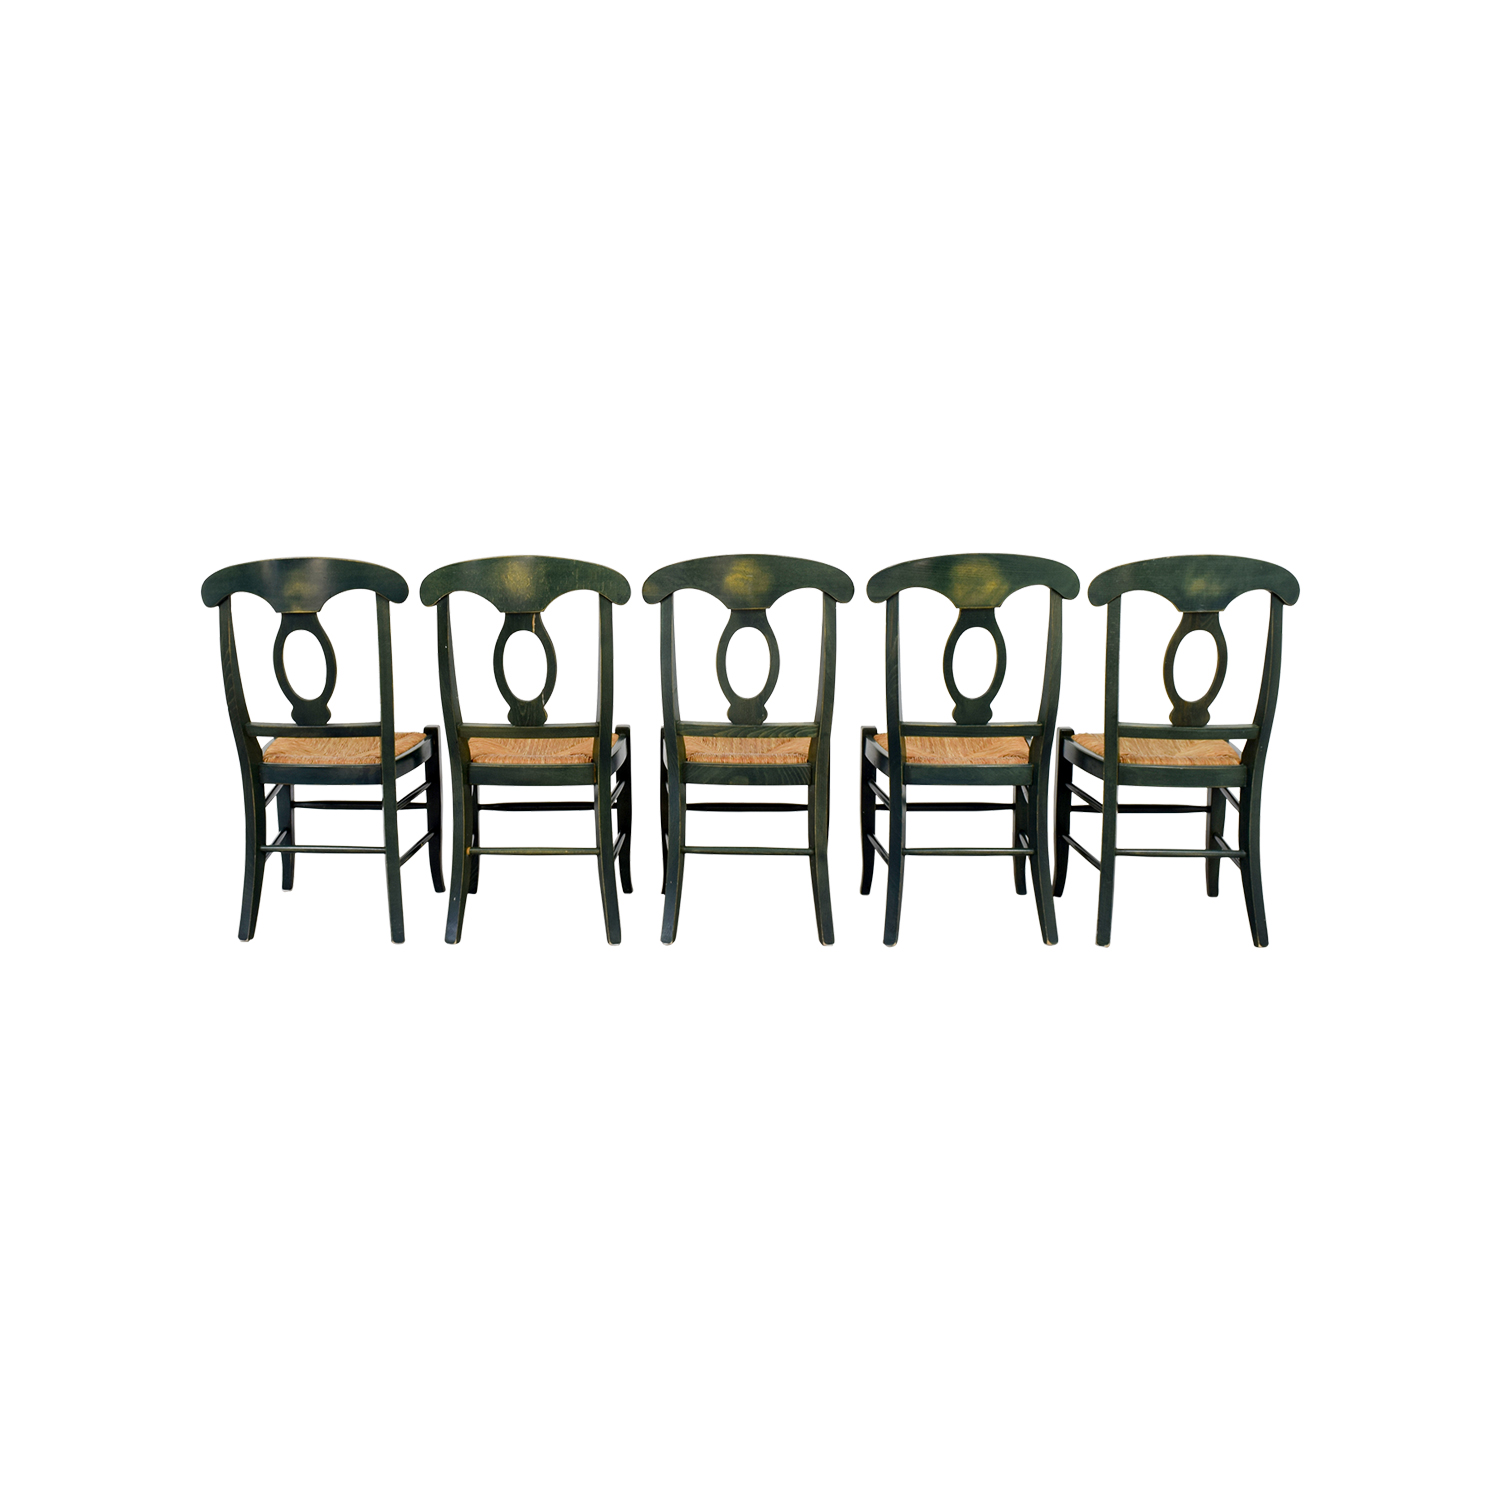 buy Pottery Barn Rush Seat Chairs Pottery Barn Dining Chairs